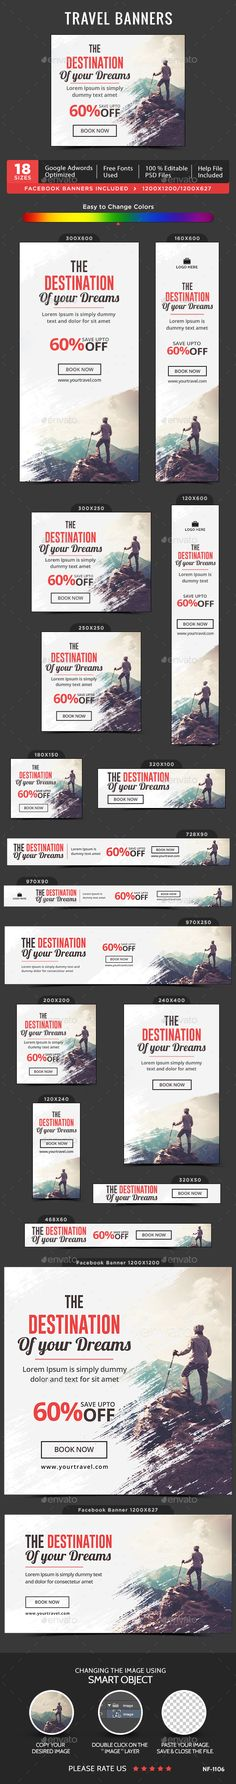 Travel Web Banners Template PSD. Download here: http://graphicriver.net/item/travel-banners/15023078?ref=ksioks